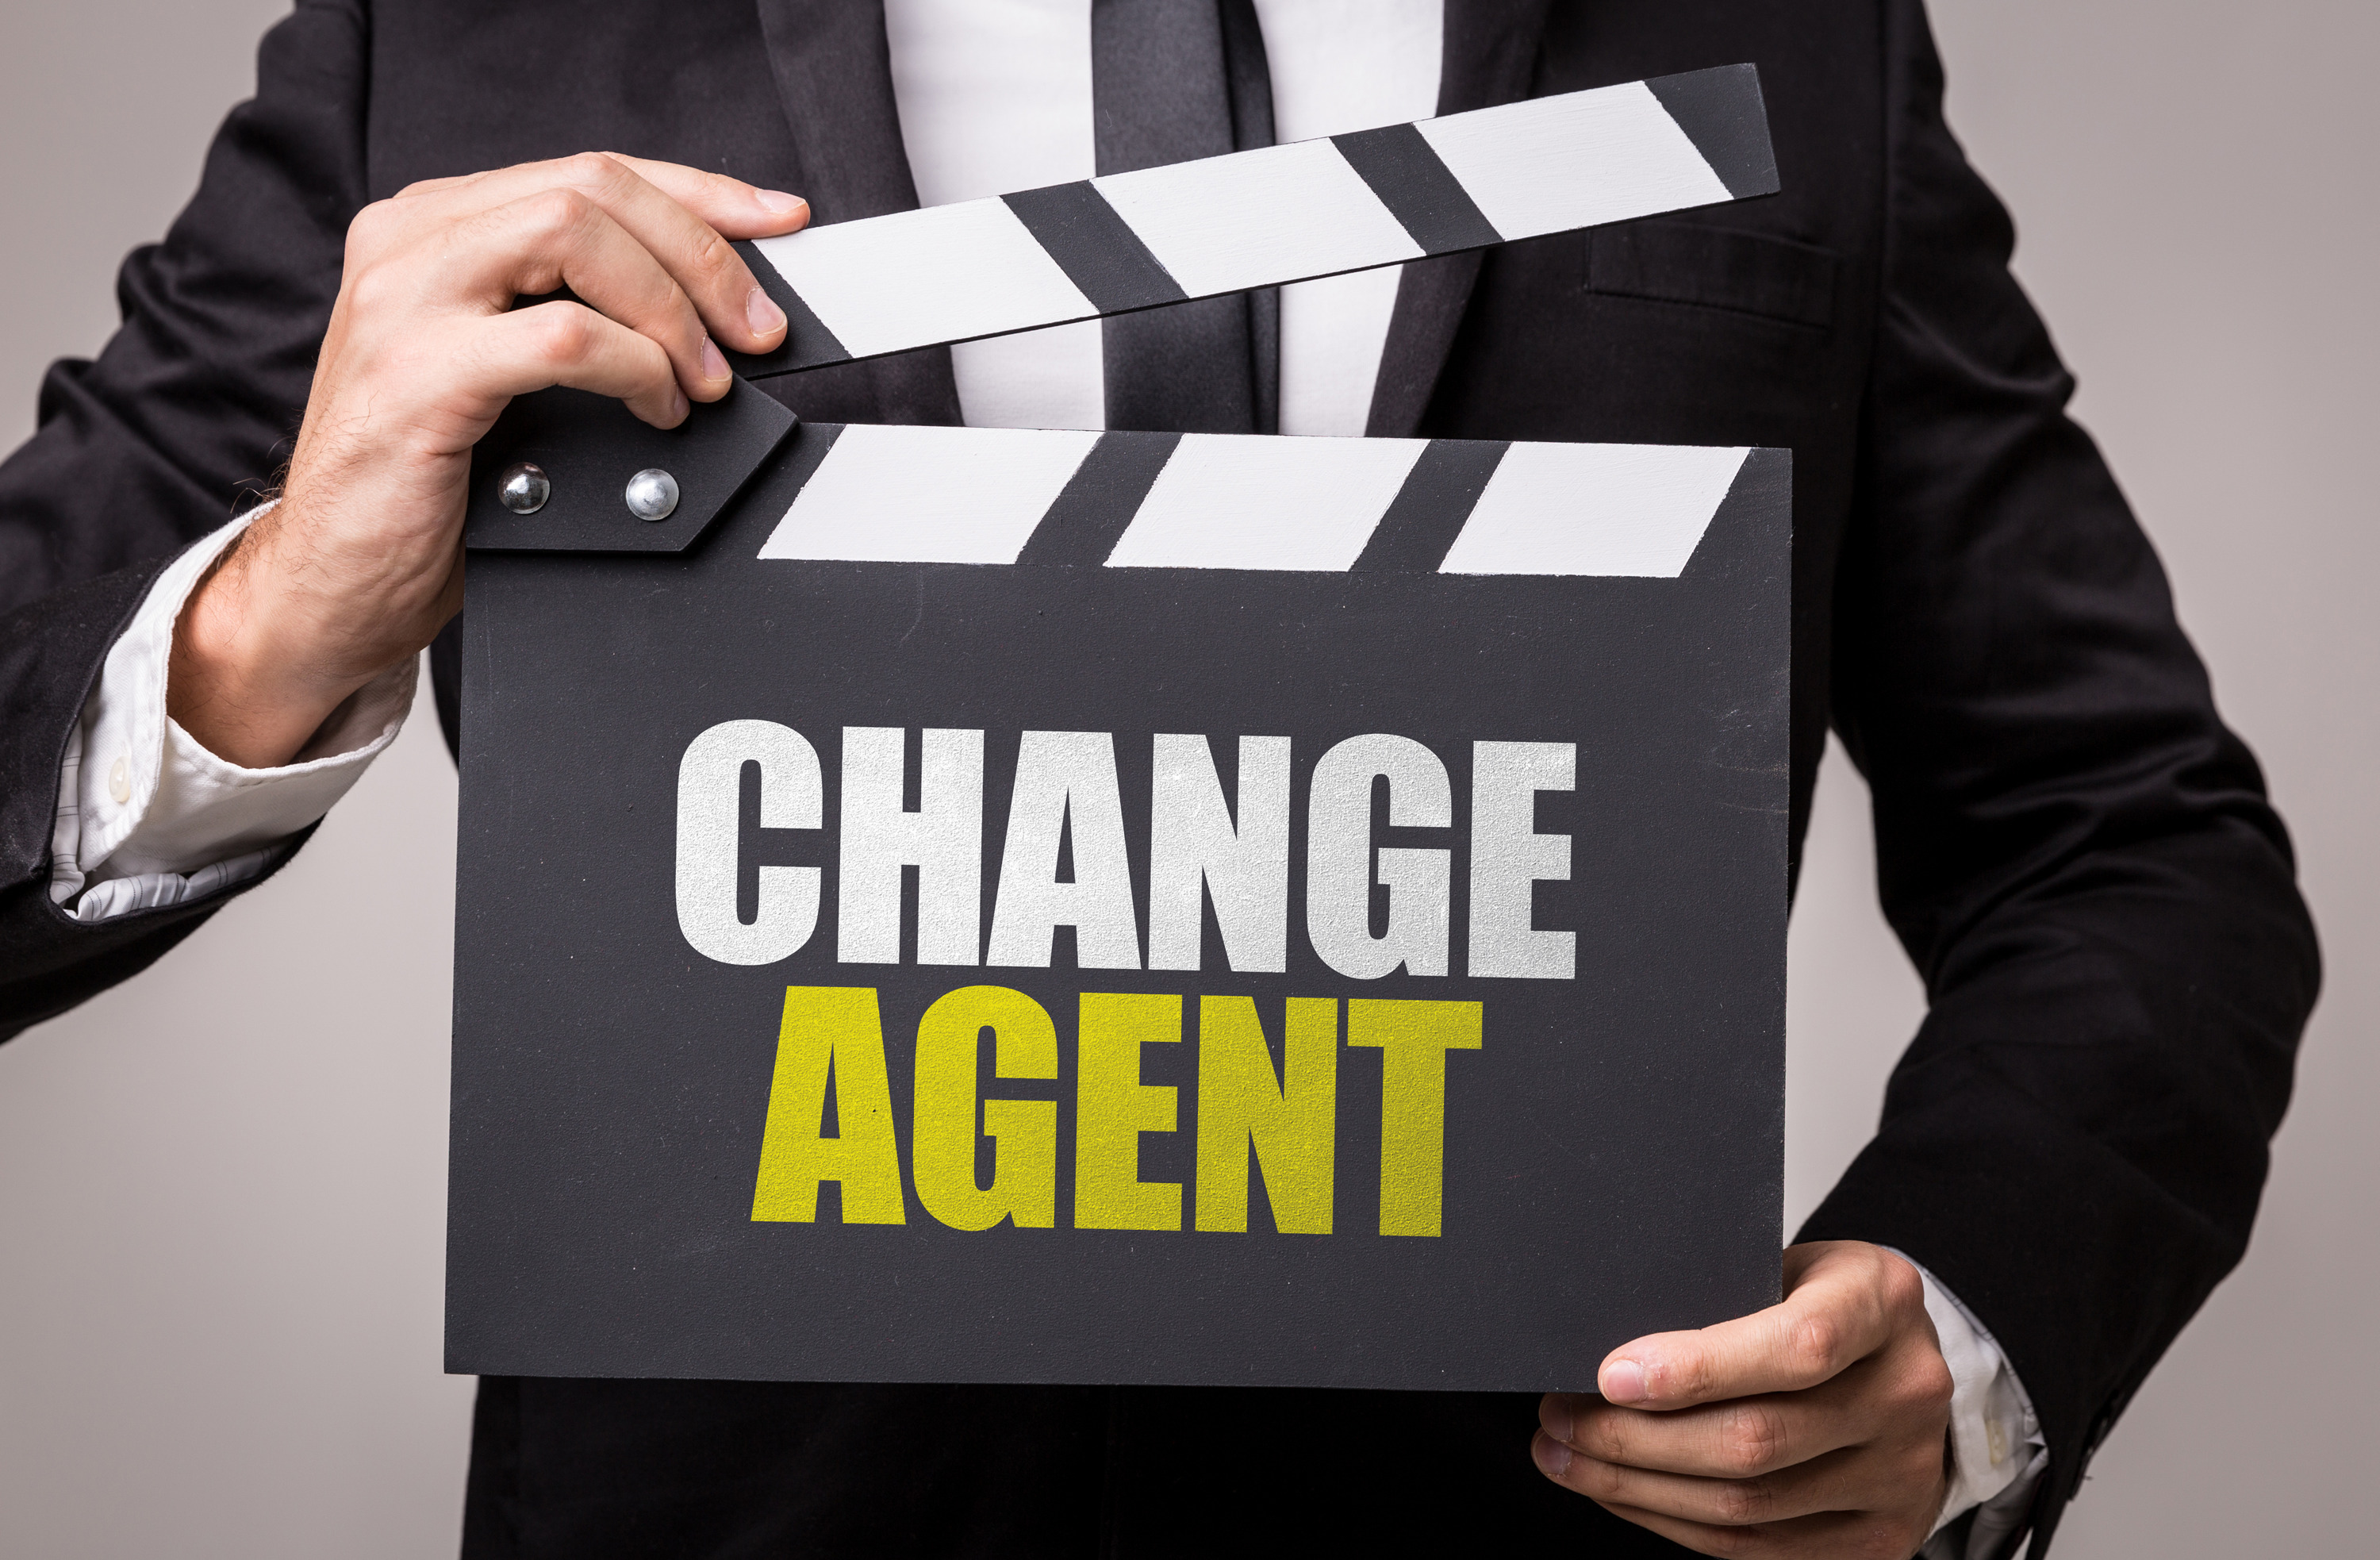 changer delaware registered agent